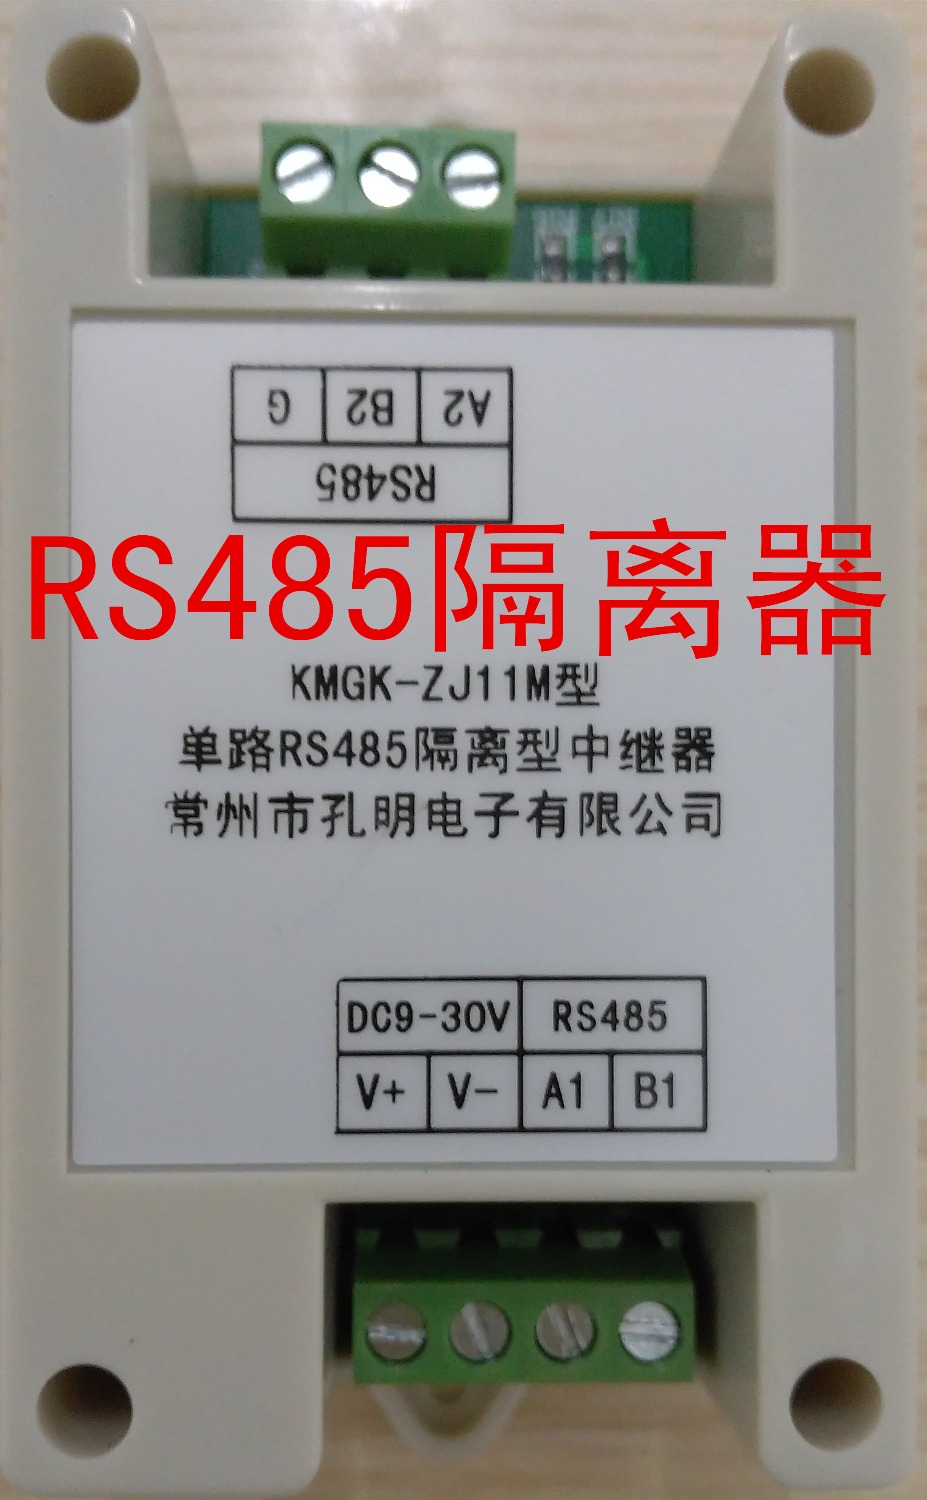 Tb6560 3a Stepping Motor Driver Drive Plate Single Toshiba C20 Wiring Diagram Contactor Industrial Grade 485 Isolator Rs485 Repeater Amplifier Range Extender